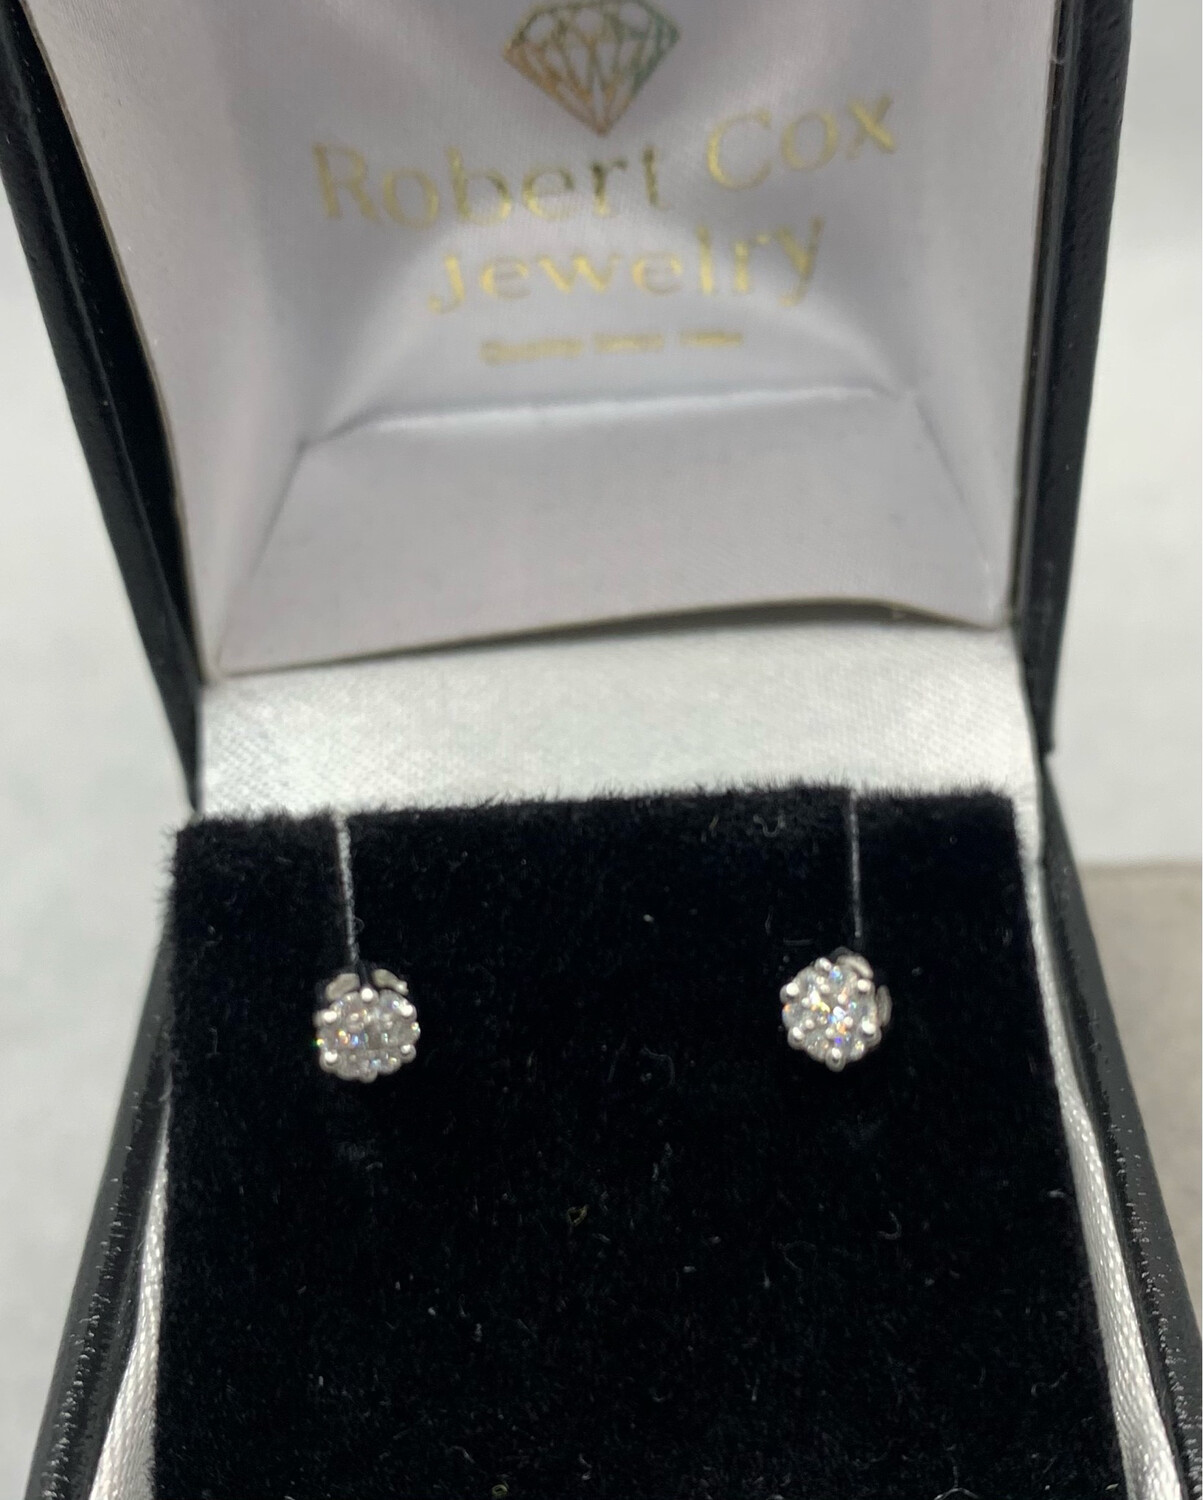 8pt Total Weight Diamond Cluster Post Earrings